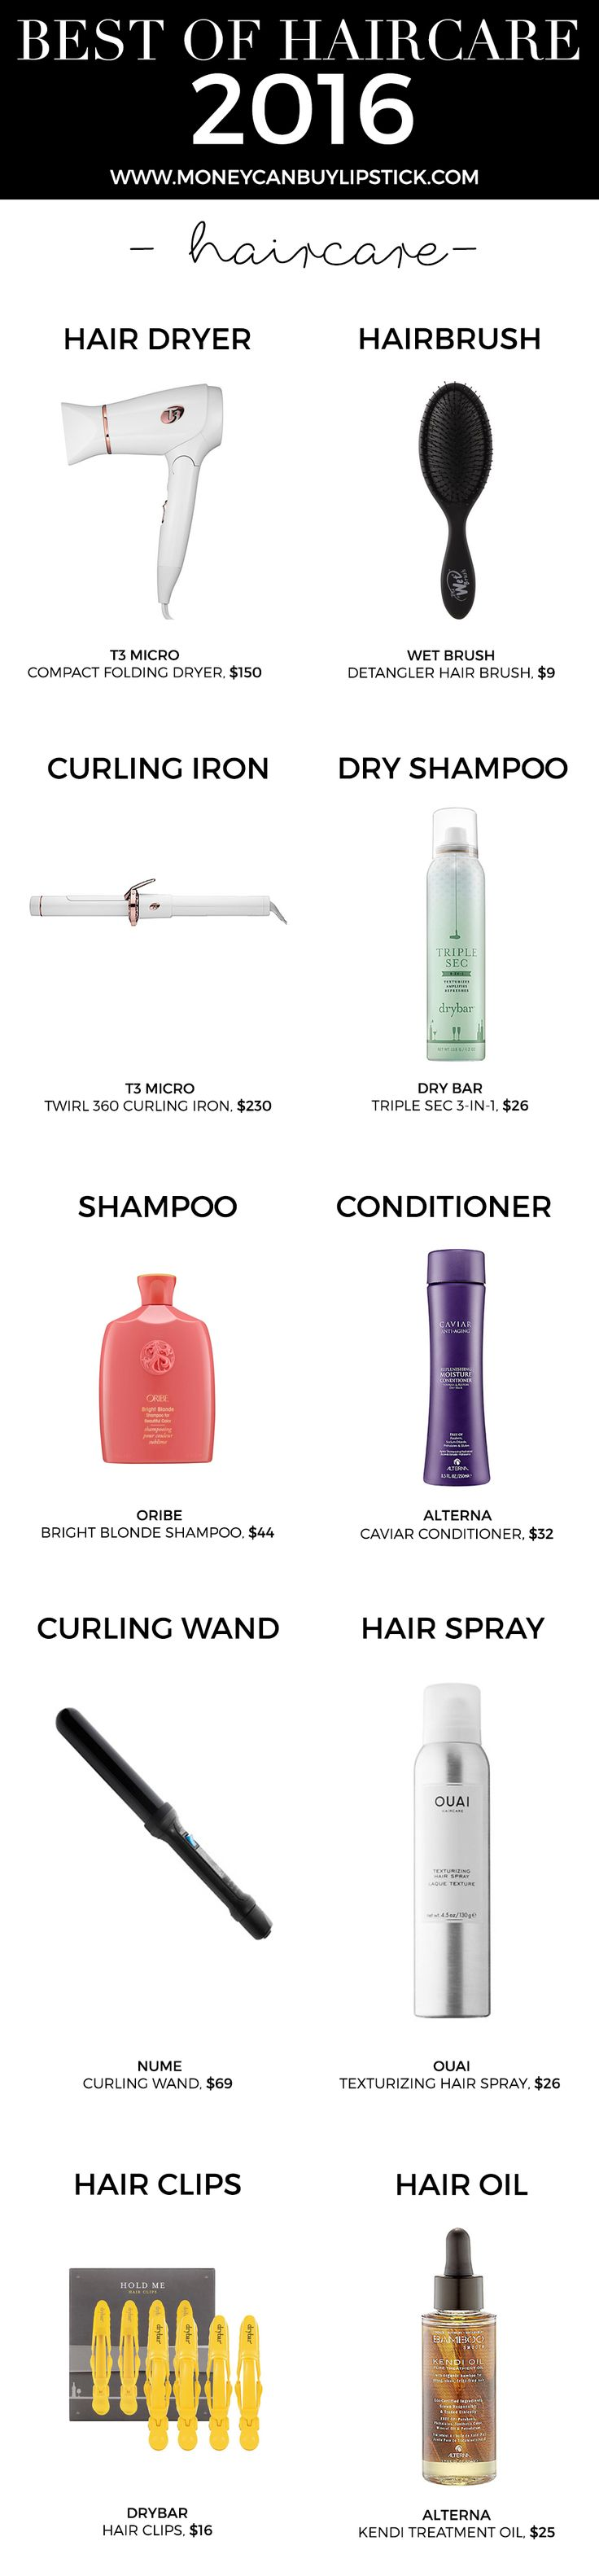 Best Haircare Products 2016 | Best Beauty Products 2016 | Haircare Products | Best Hair Dryer | Best Dry Shampoo | Best Detangler Brush | Blogger Haircare